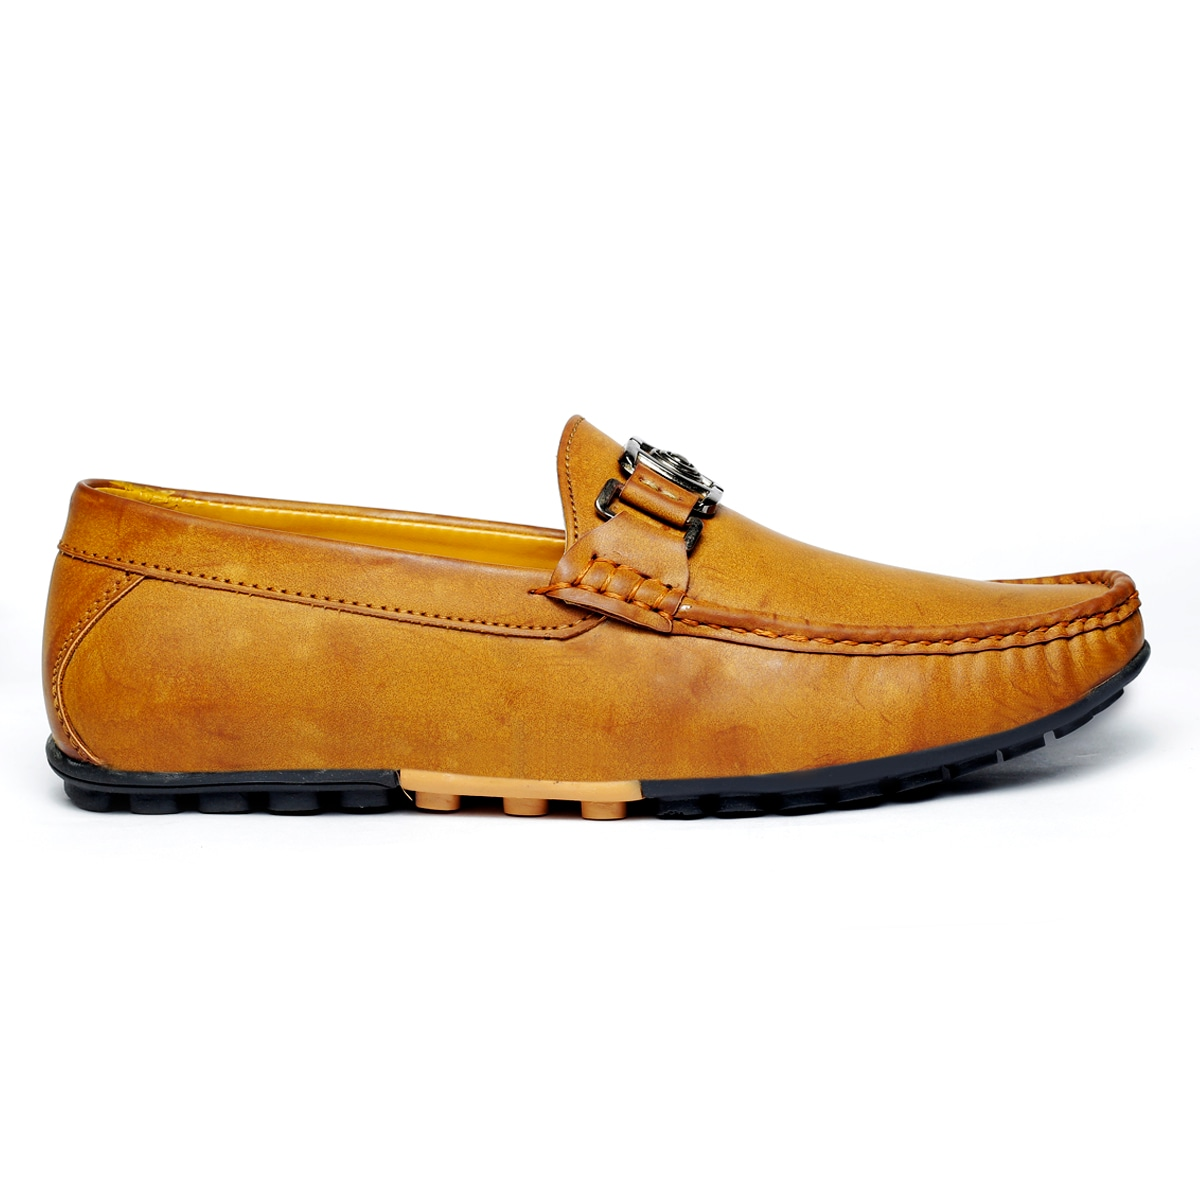 JK PORT COMFORTABLE, FASHIONABLE AND TRENDY LOAFERS JKPLF039TAN (TAN,6-10,8 PAIR)